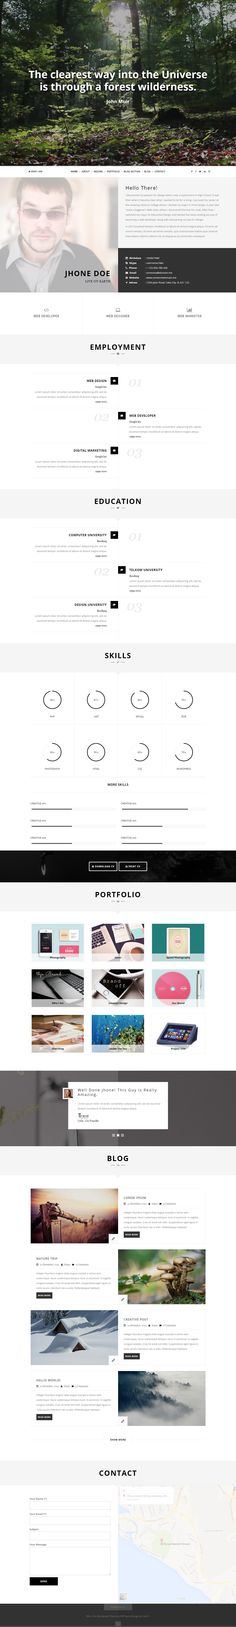 Identity is Premium full Responsive WordPress Resume Theme One - wordpress resume theme